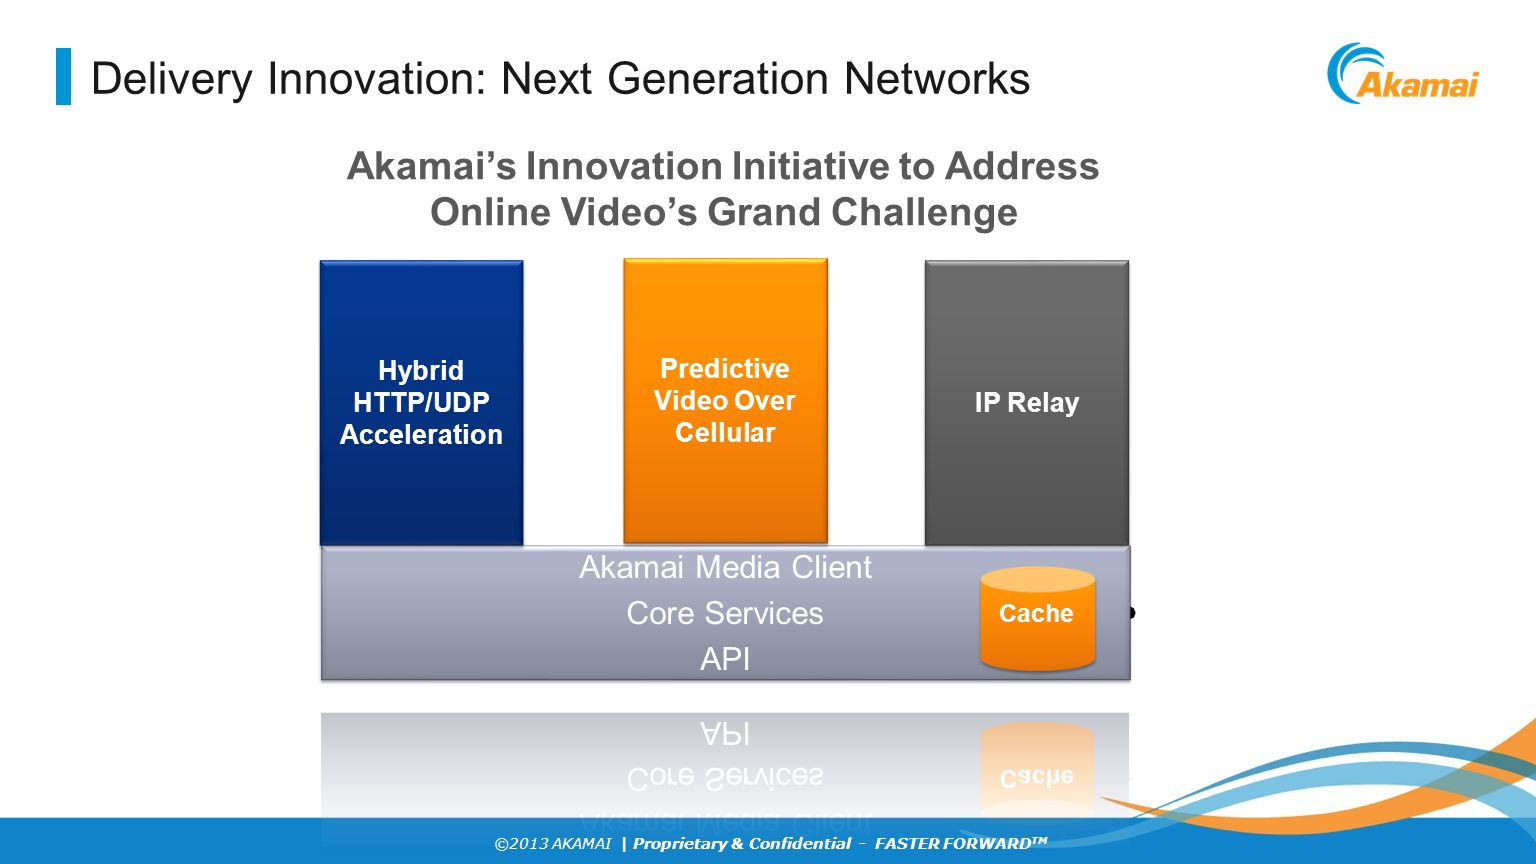 Delivery Innovation: Next Generation Networks